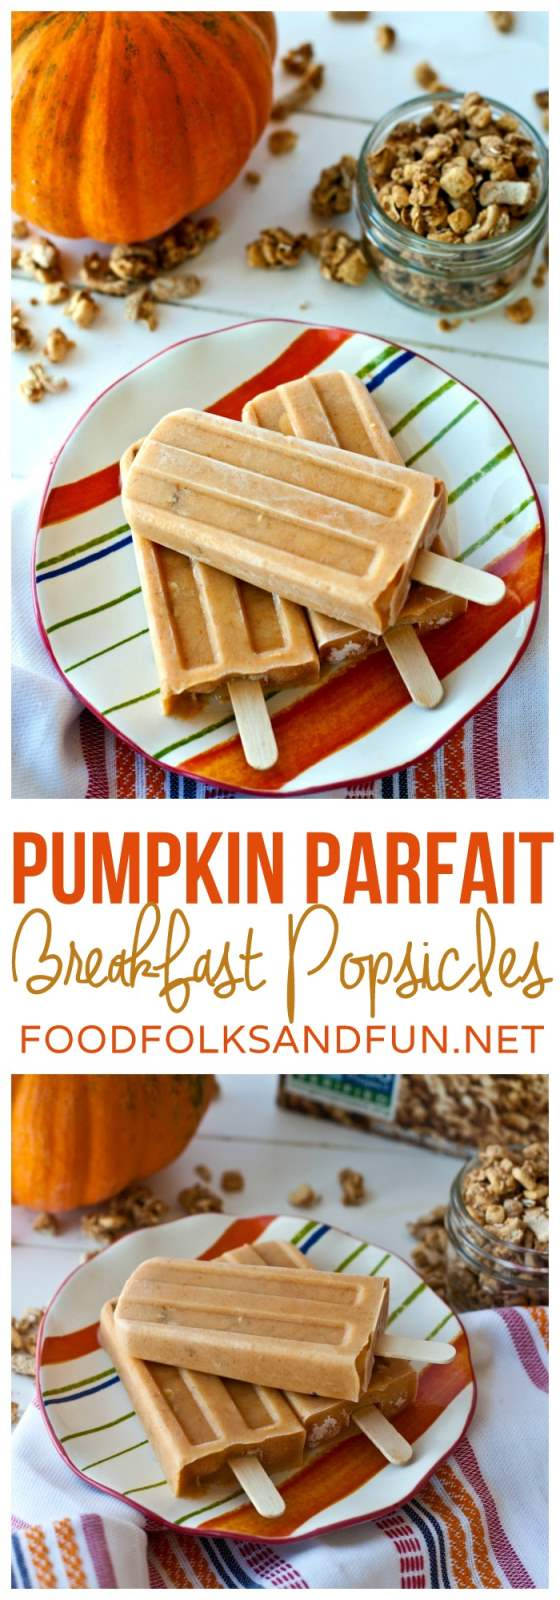 Collage of Pumpkin Parfait Breakfast Popsicles with text overlay for Pinterest